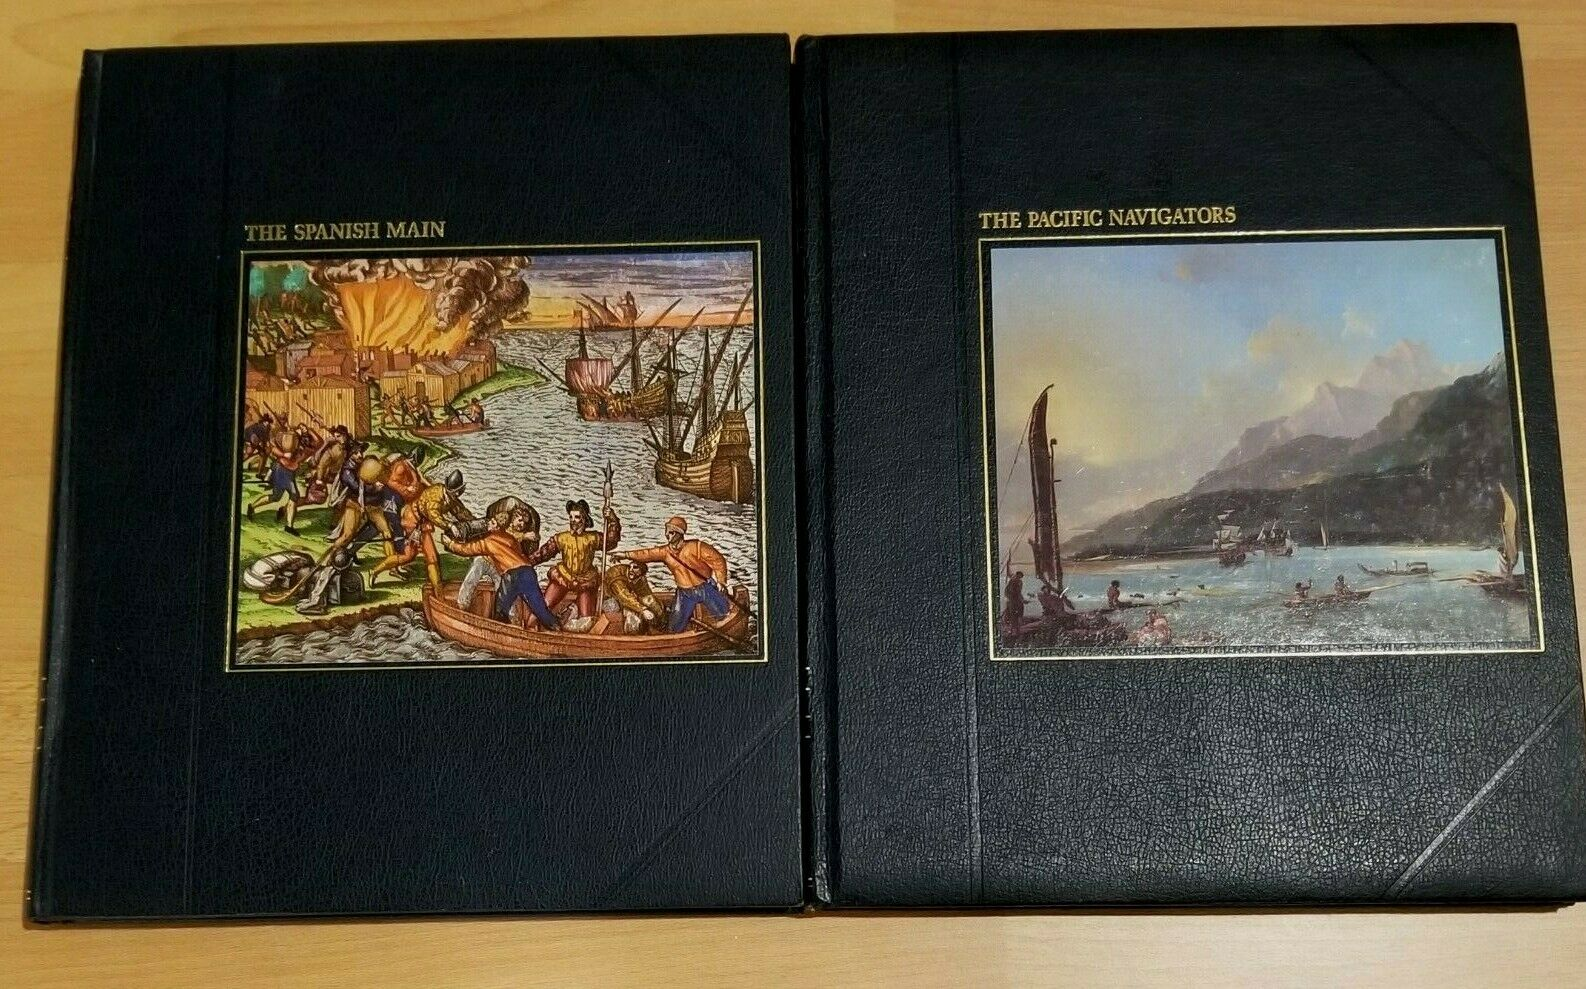 Lot of 5 TIME-LIFE Books – The Seafarers Series 1979 Hardcover |